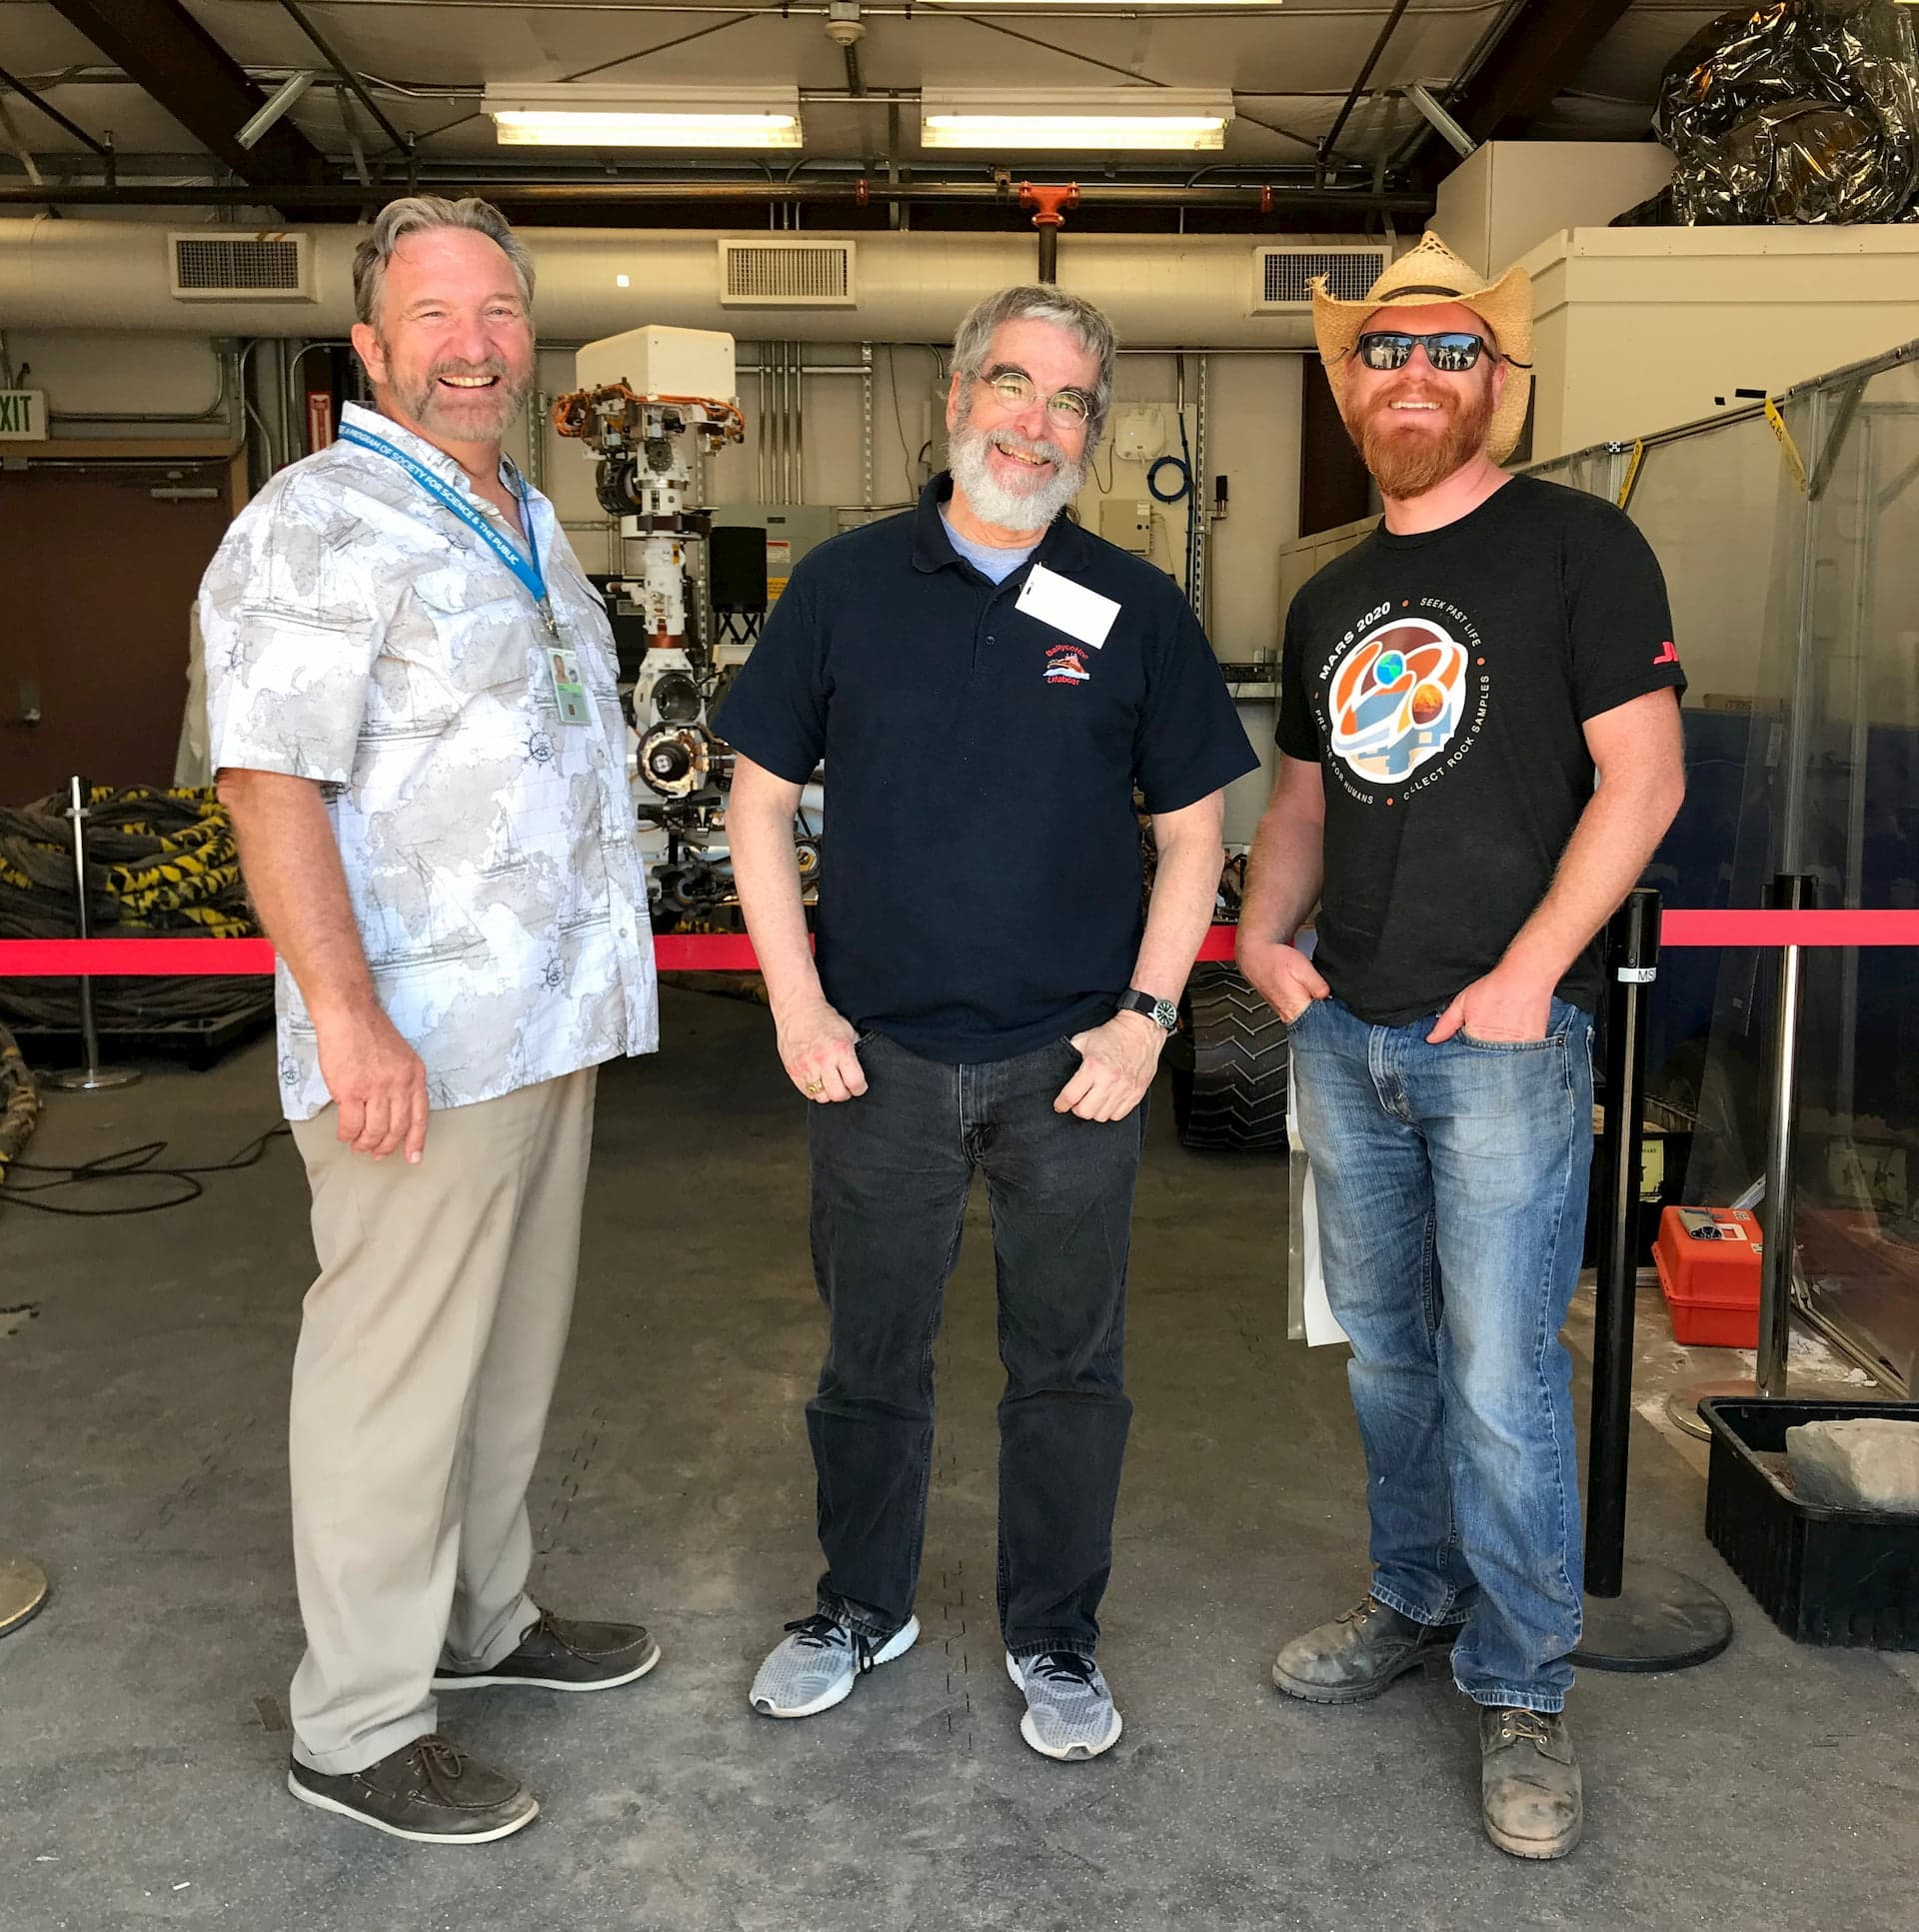 """The Perseverance Mars Rover """"twin"""" at JPL, during a visit by Br. Consolmagno"""